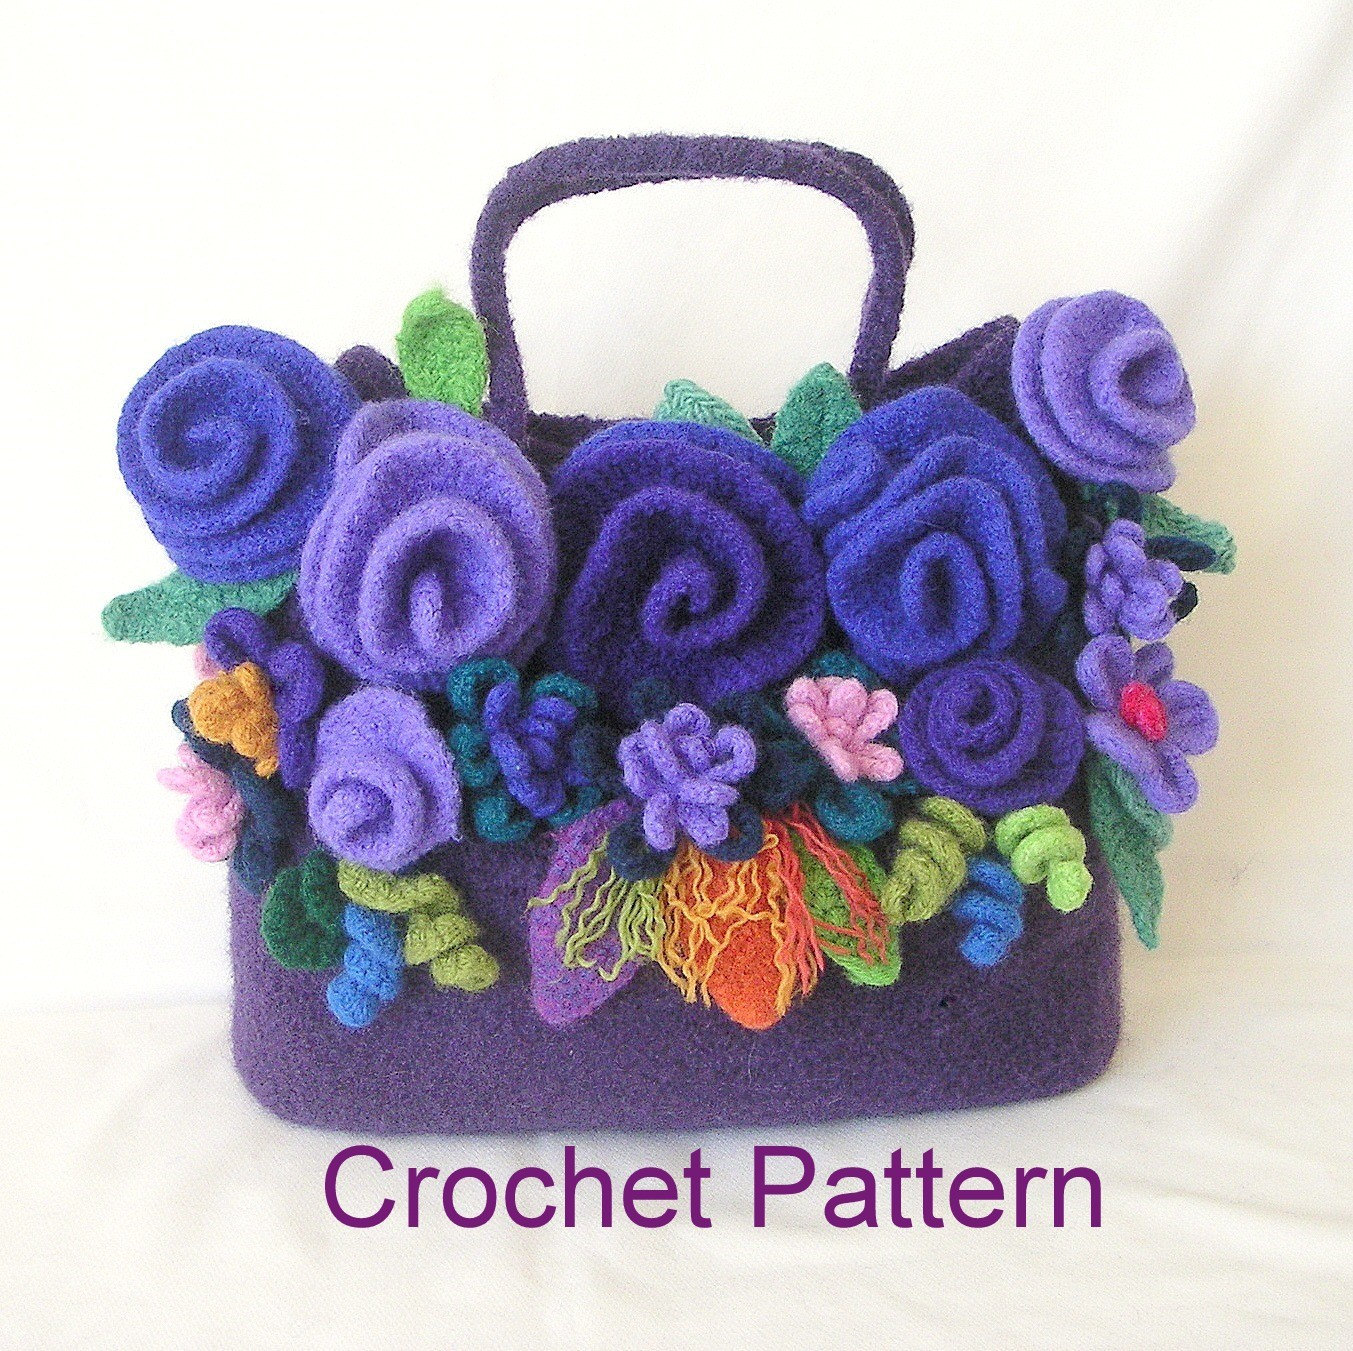 How to make Crochet Felted Flower Bag by GraceKnittingPattern